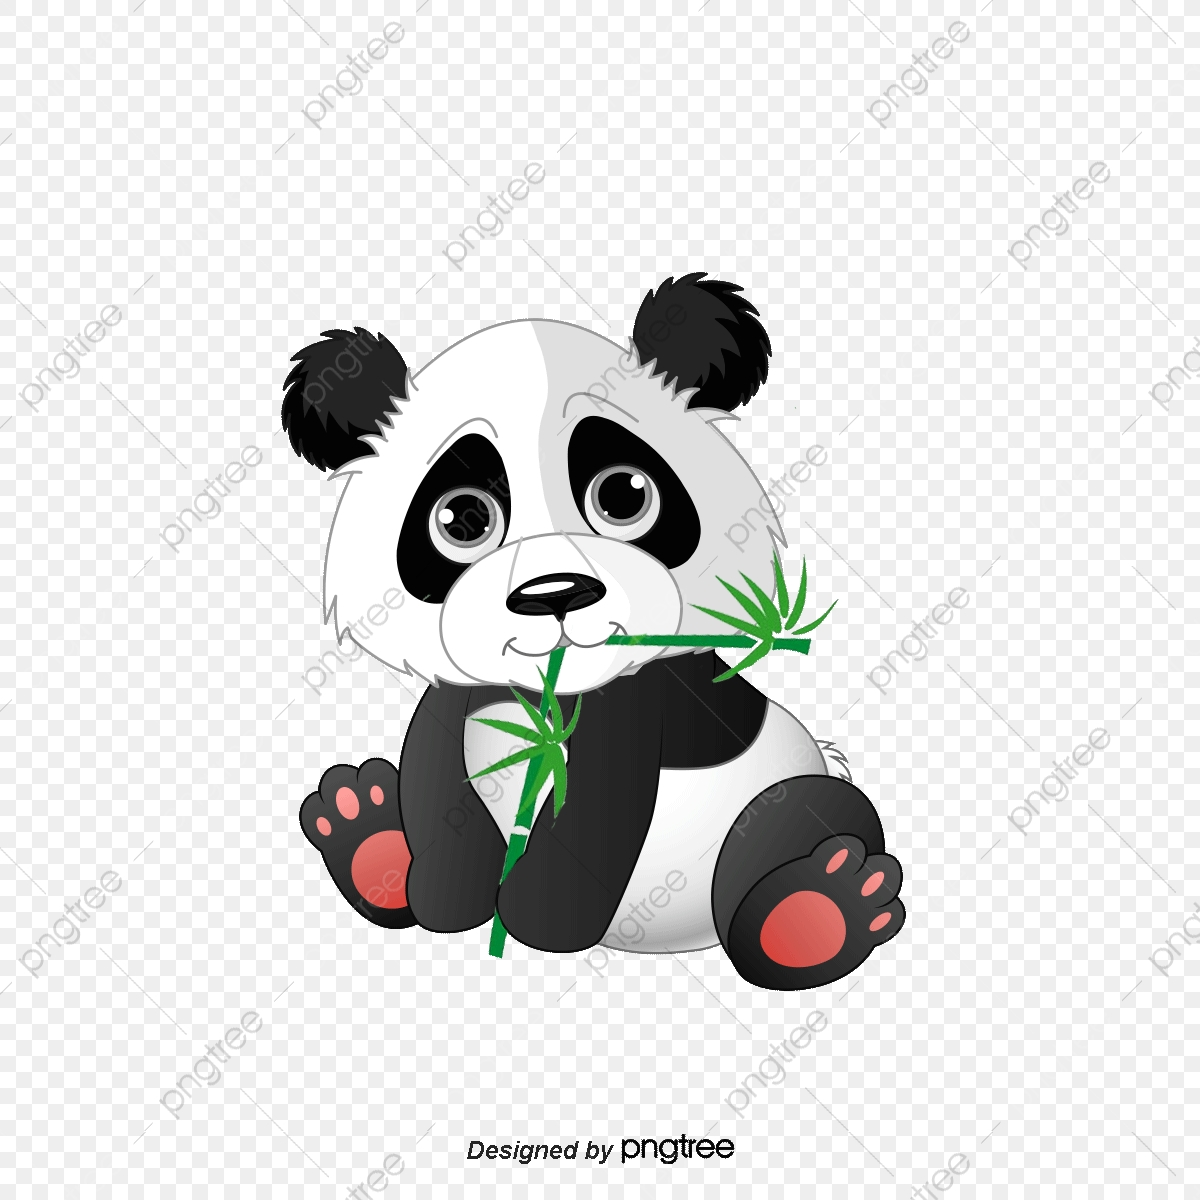 Panda Eating Bamboo, Cartoon Comics, Animal Illustration.